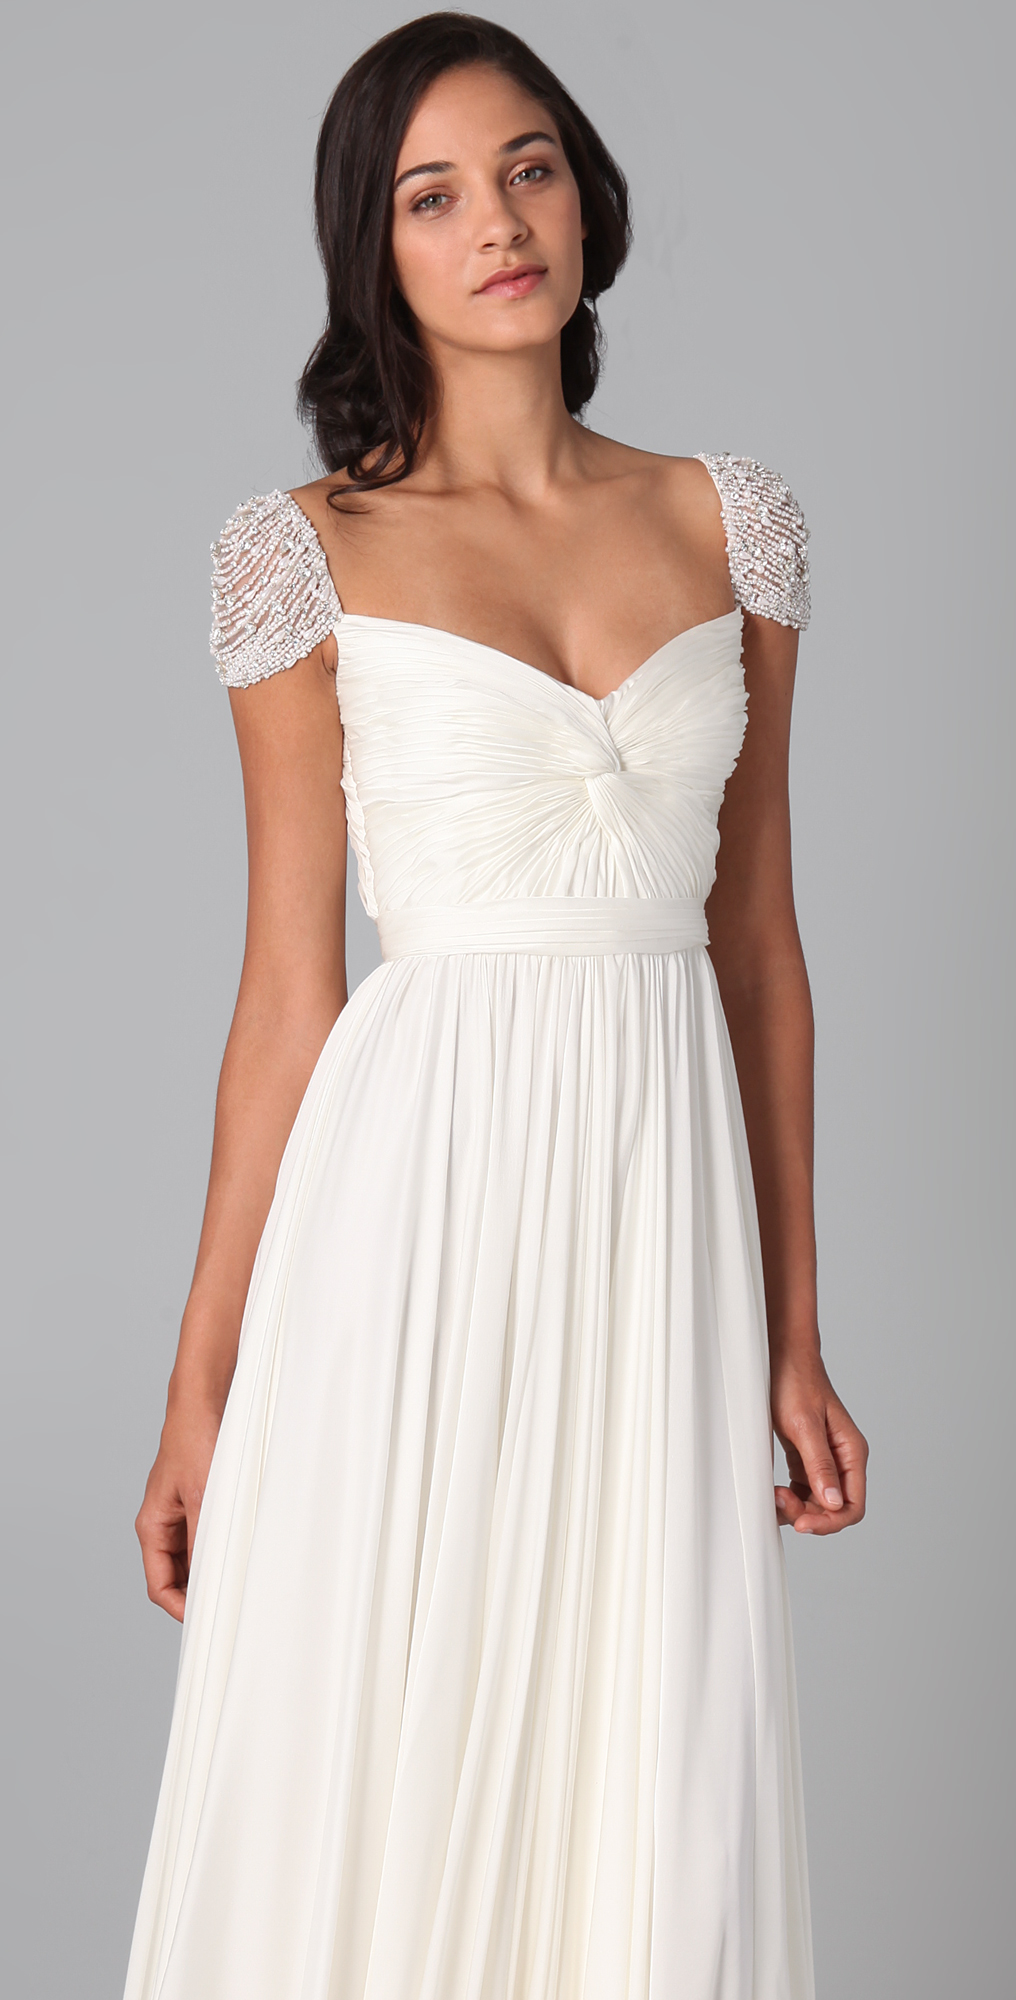 Chiffon white long prom dresses evening dress with beading best cheap